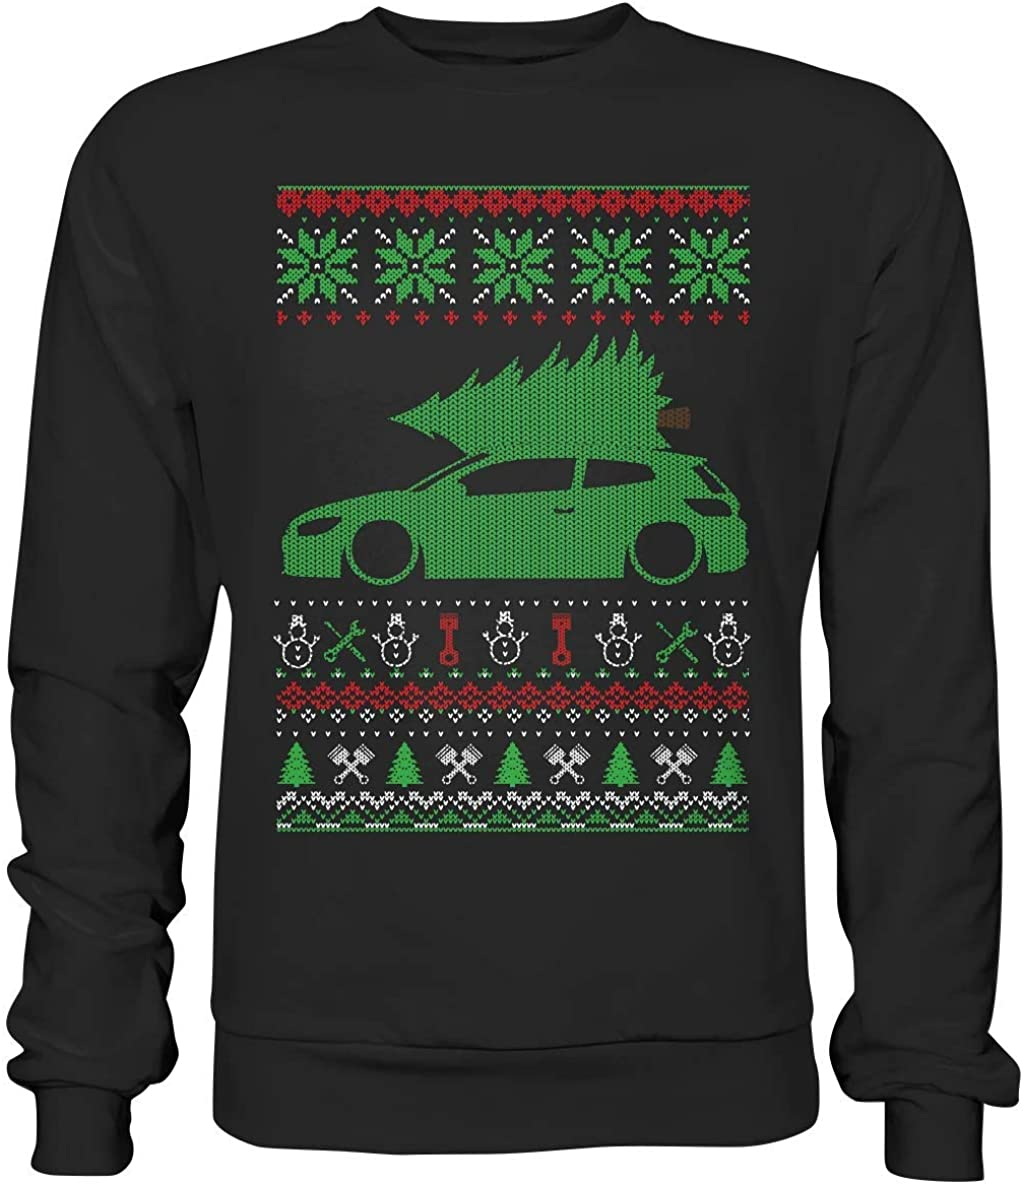 glstkrrn Scirocco 3 Ugly Christmas Sweater